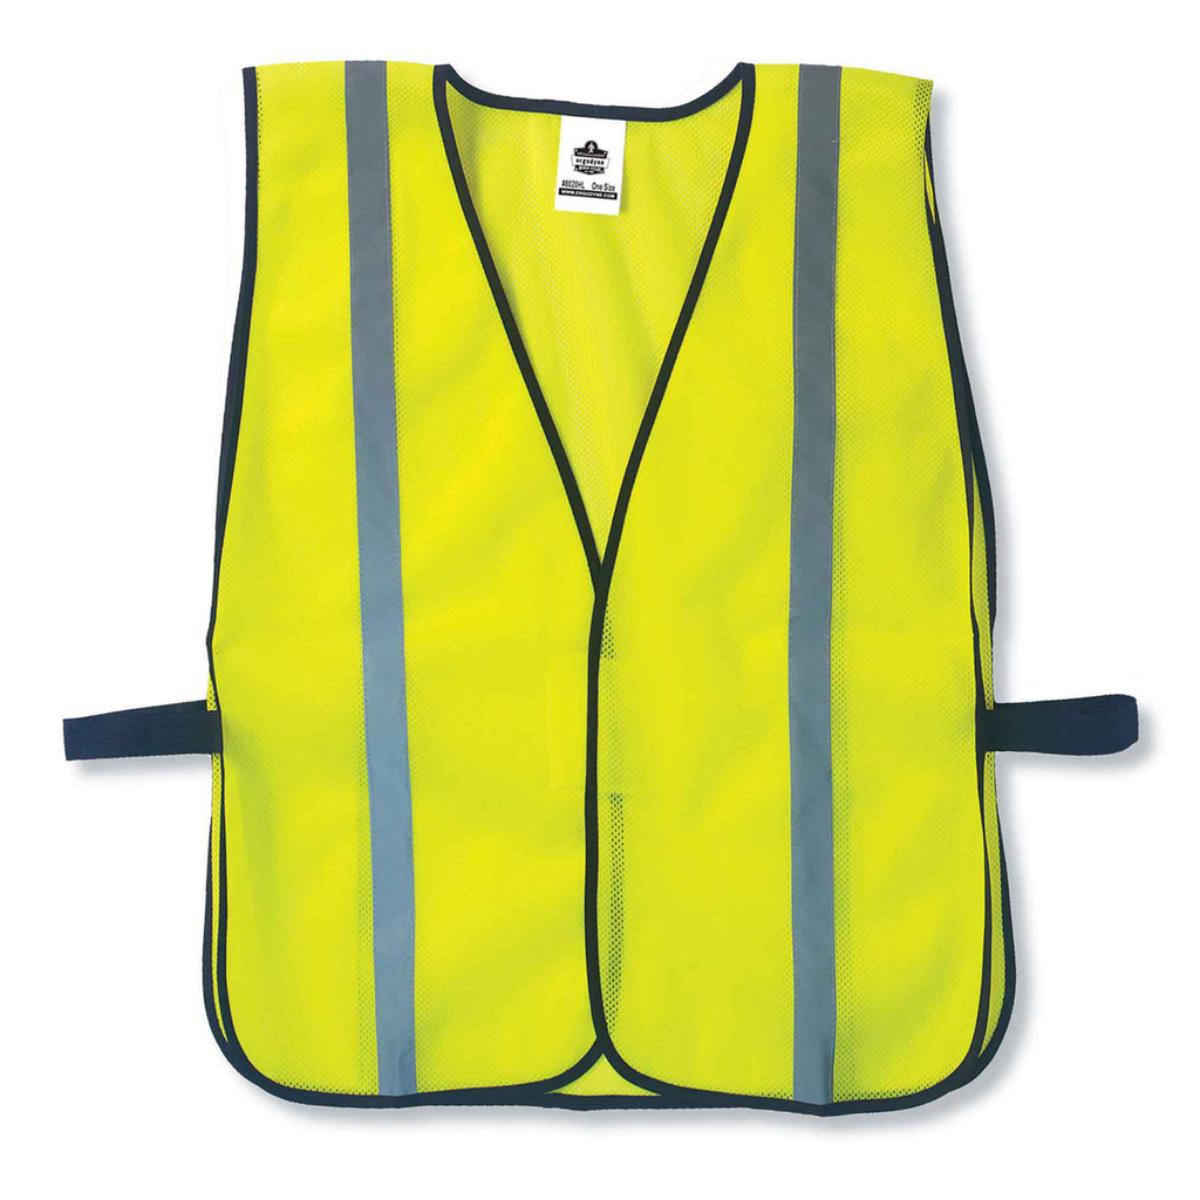 8020HL  Orange Non-Certified Standard Vest